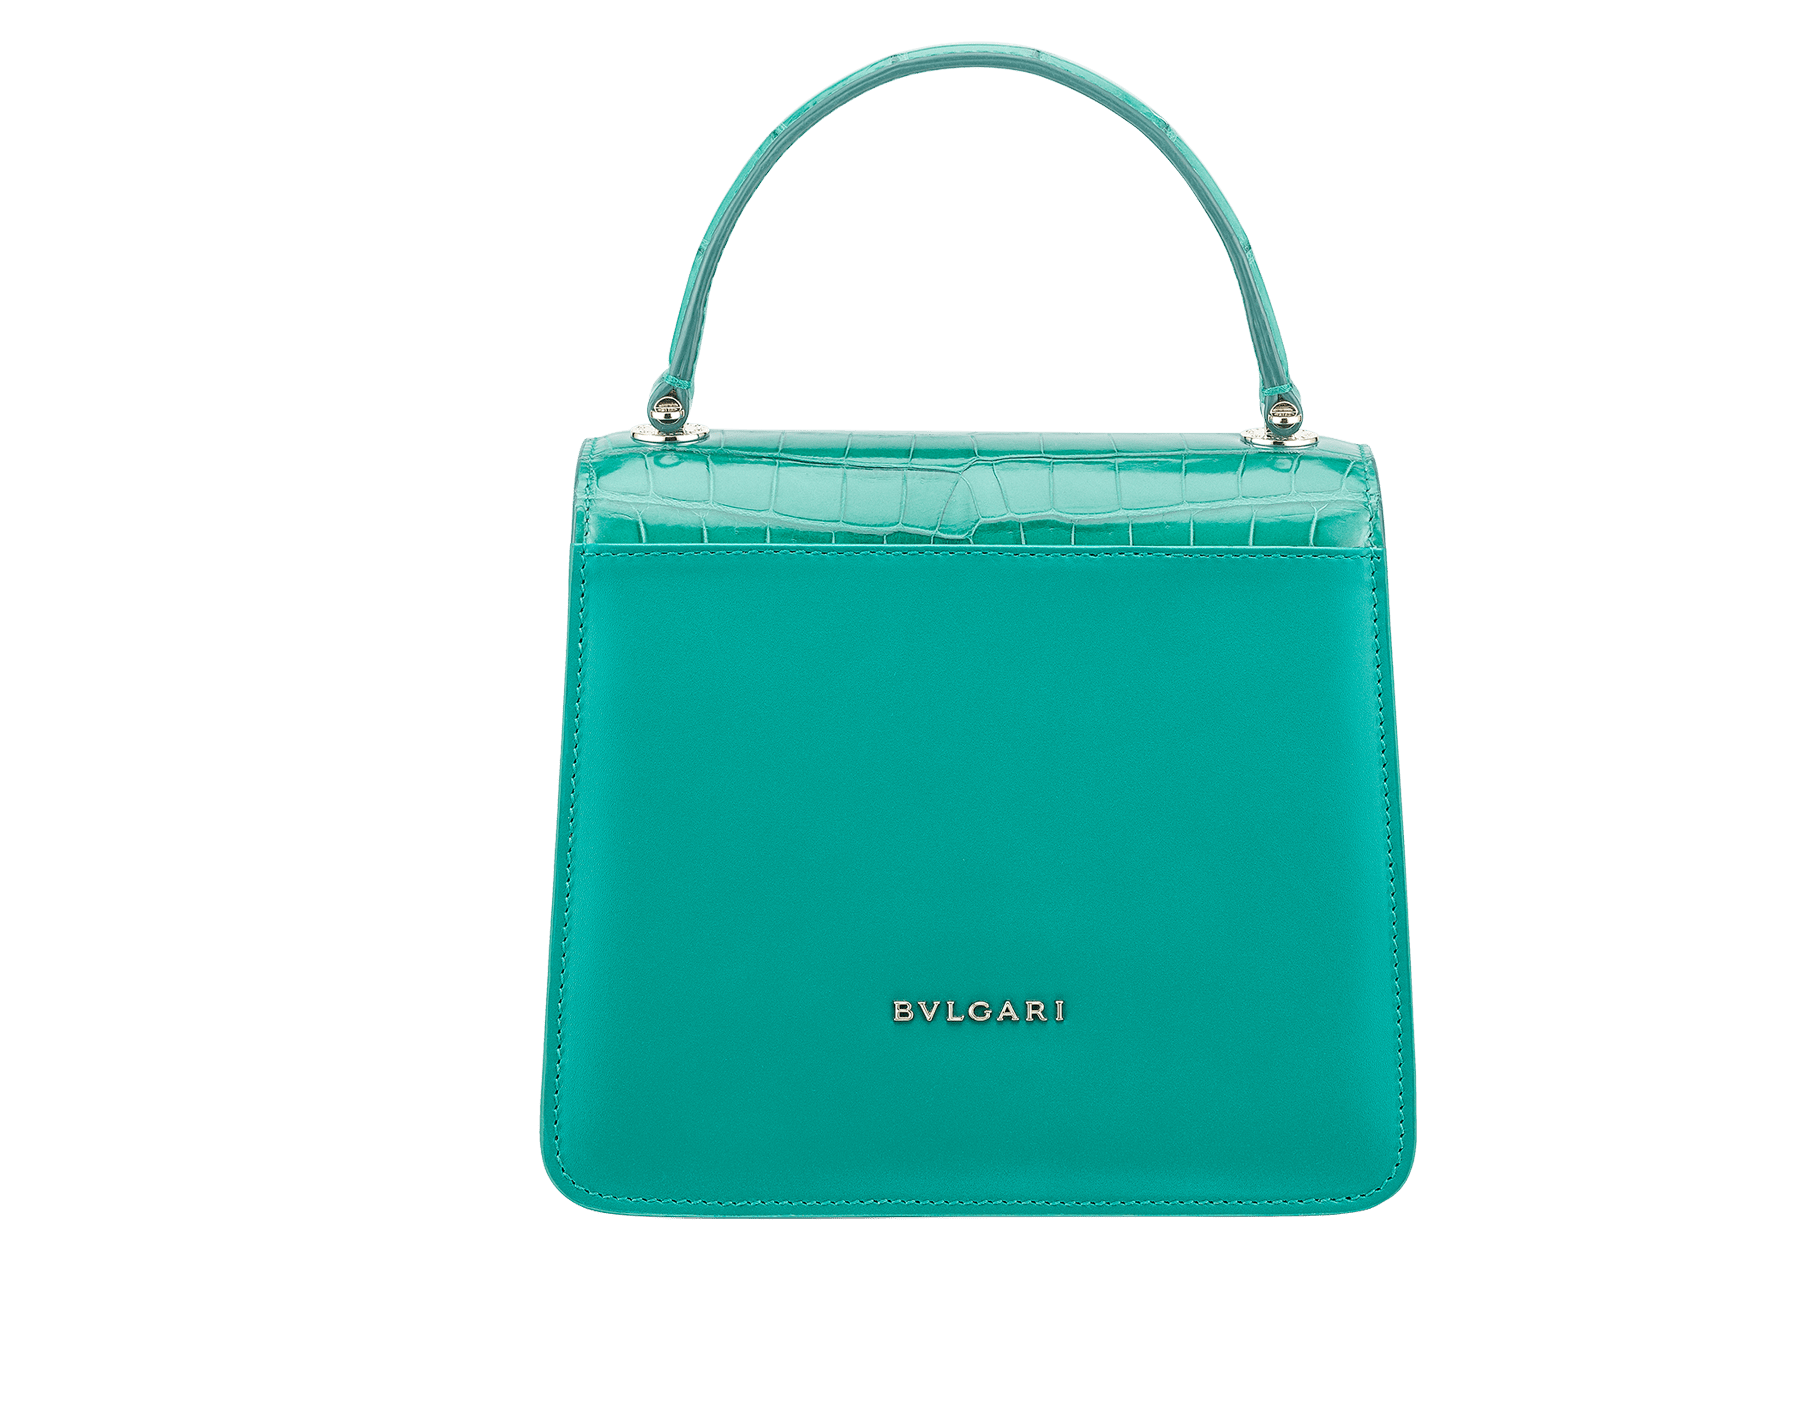 Serpenti Forever crossbody bag in tropical turquoise shiny croco skin and smooth calf leather. Snakehead closure in light gold plated brass decorated with black and white enamel, and green malachite eyes. 288492 image 3